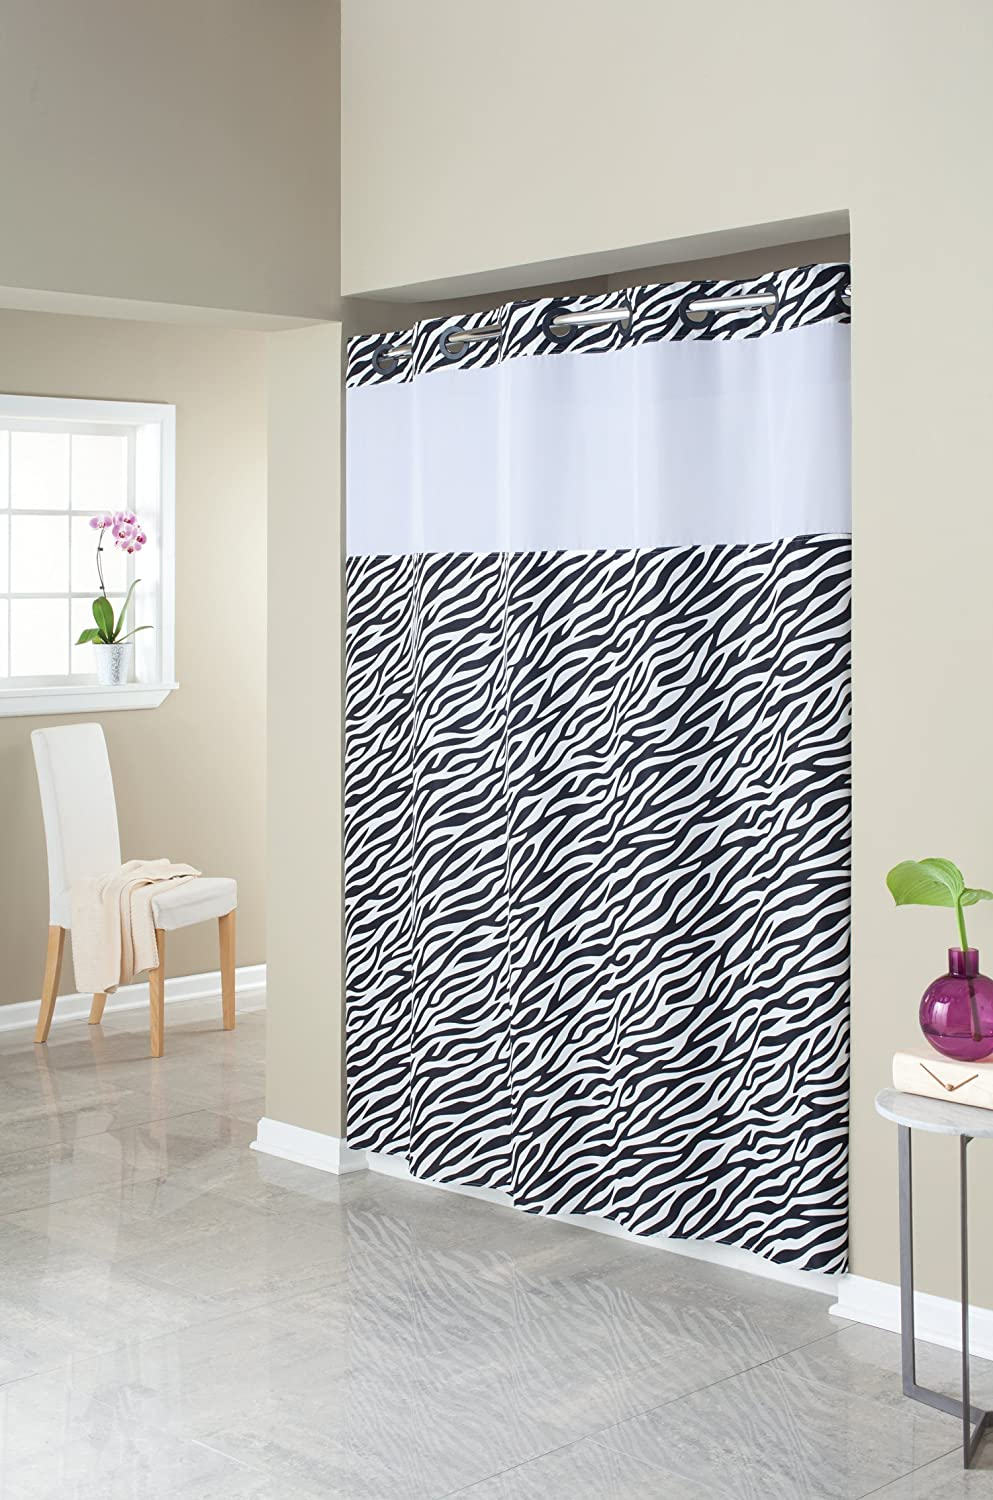 Amazon.com: Hookless RBH40MY407 Fabric Shower Curtain with Built ...